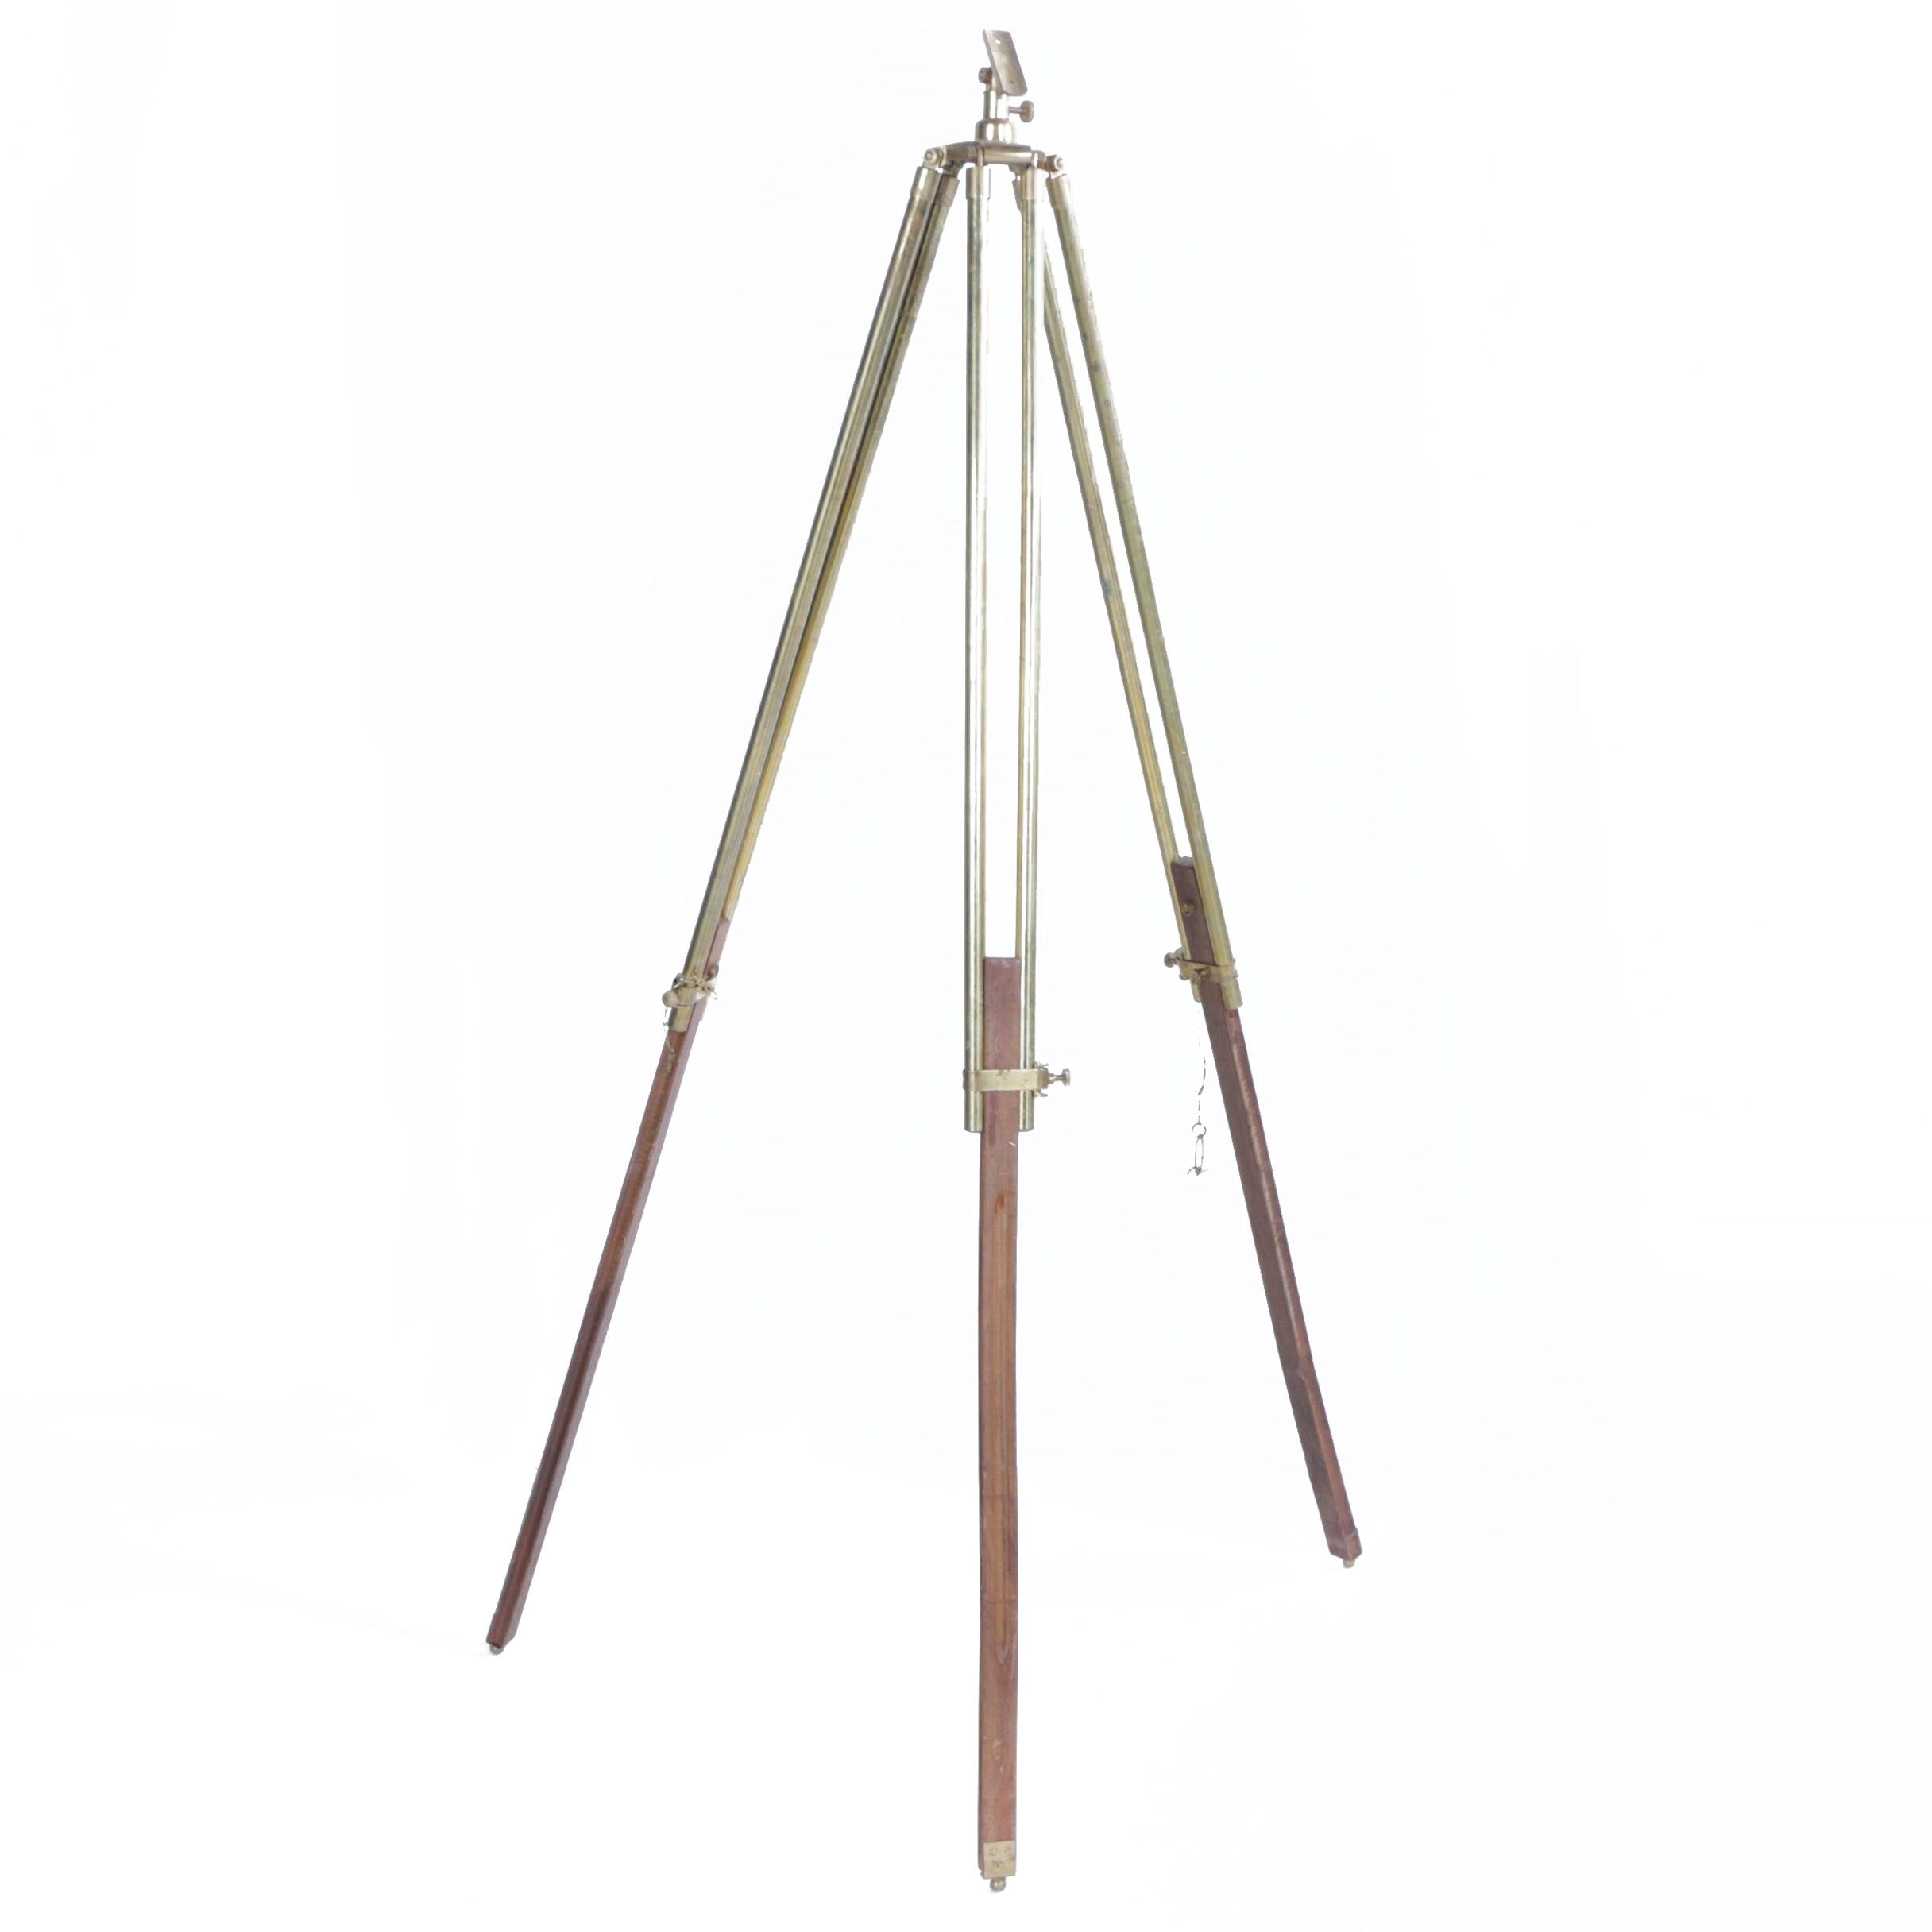 Vintage Brass and Wood Surveying Tripod